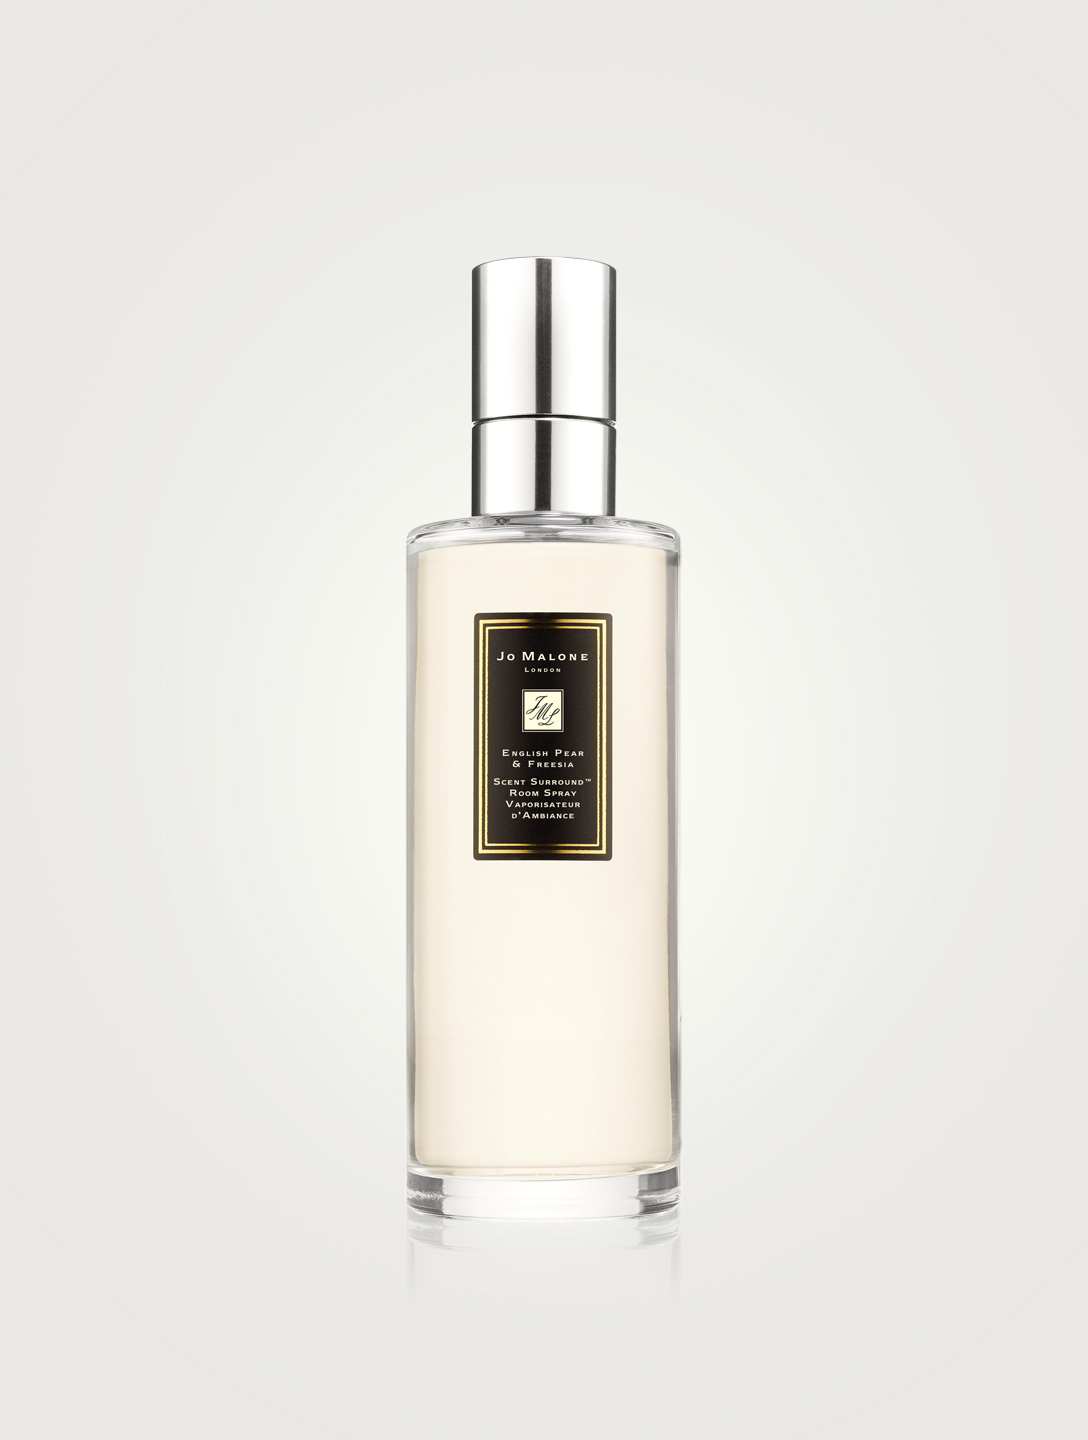 JO MALONE LONDON Vaporisateur d'ambiance Scent SurroundMC English Pear & Freesia Beauté